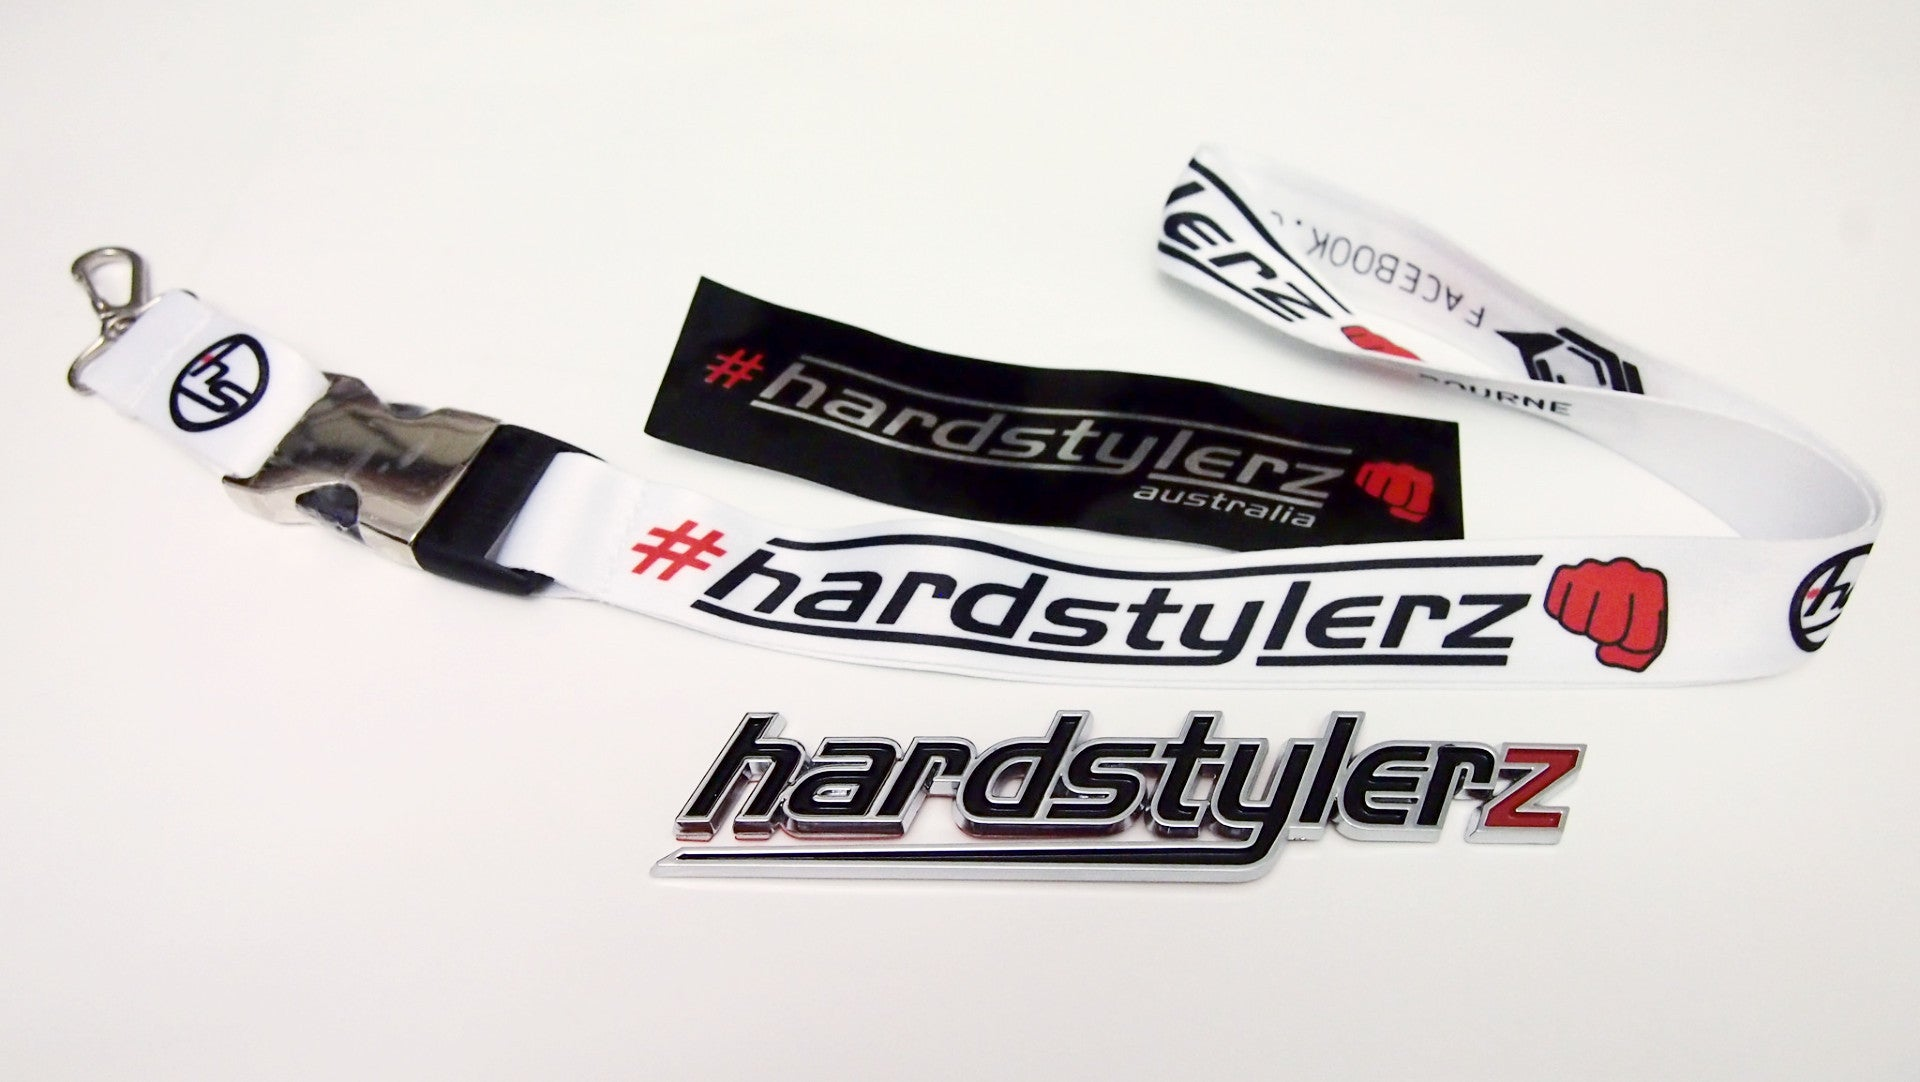 Hardstylerz White Lanyard - #3 Gen - SuperFried